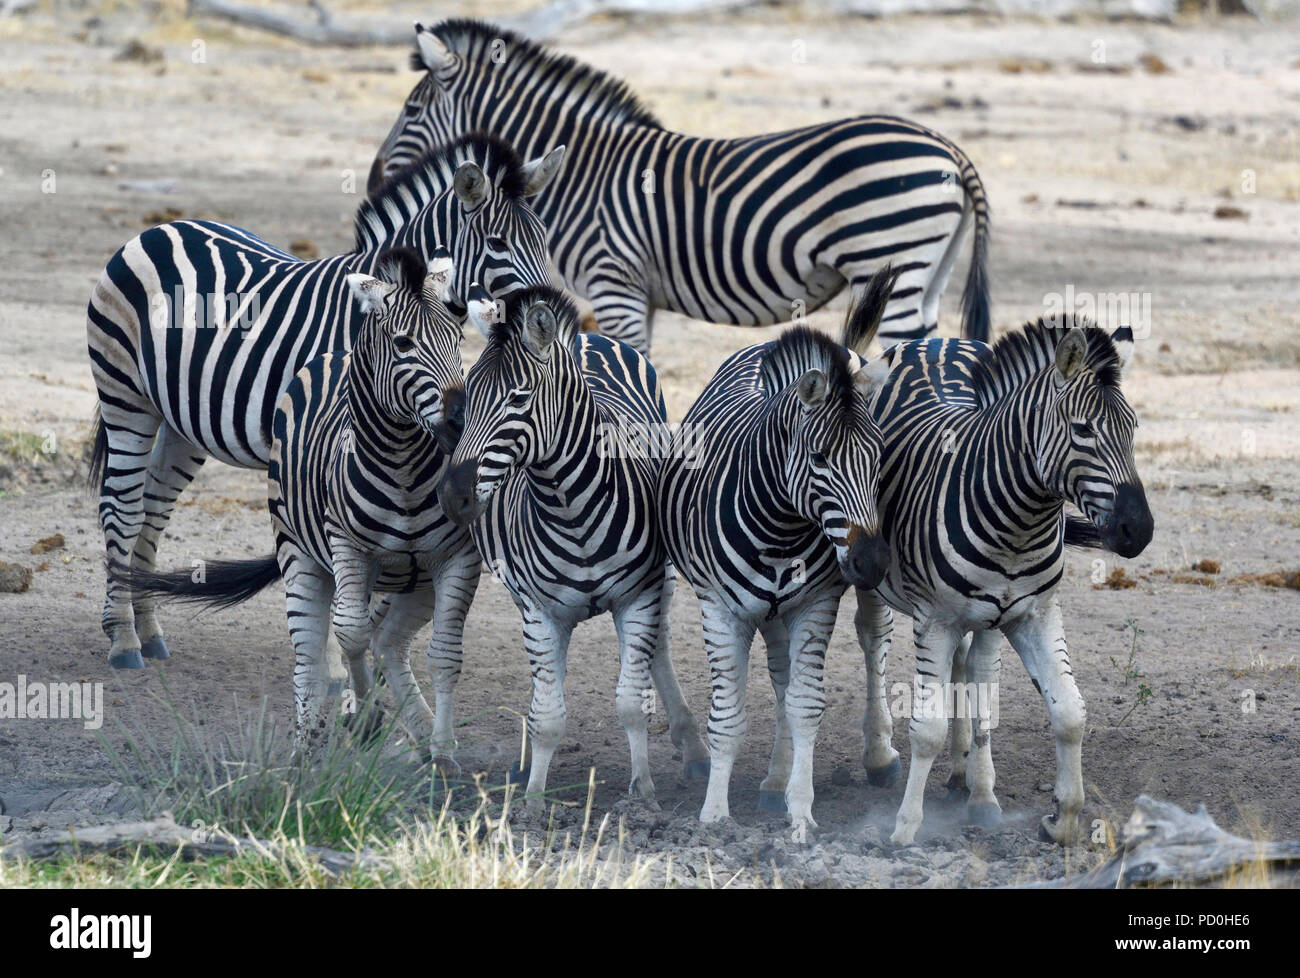 South Africa, a fantastic travel destination to experience third and first world together. Zebra stripes and patterns, Kruger Park. - Stock Image